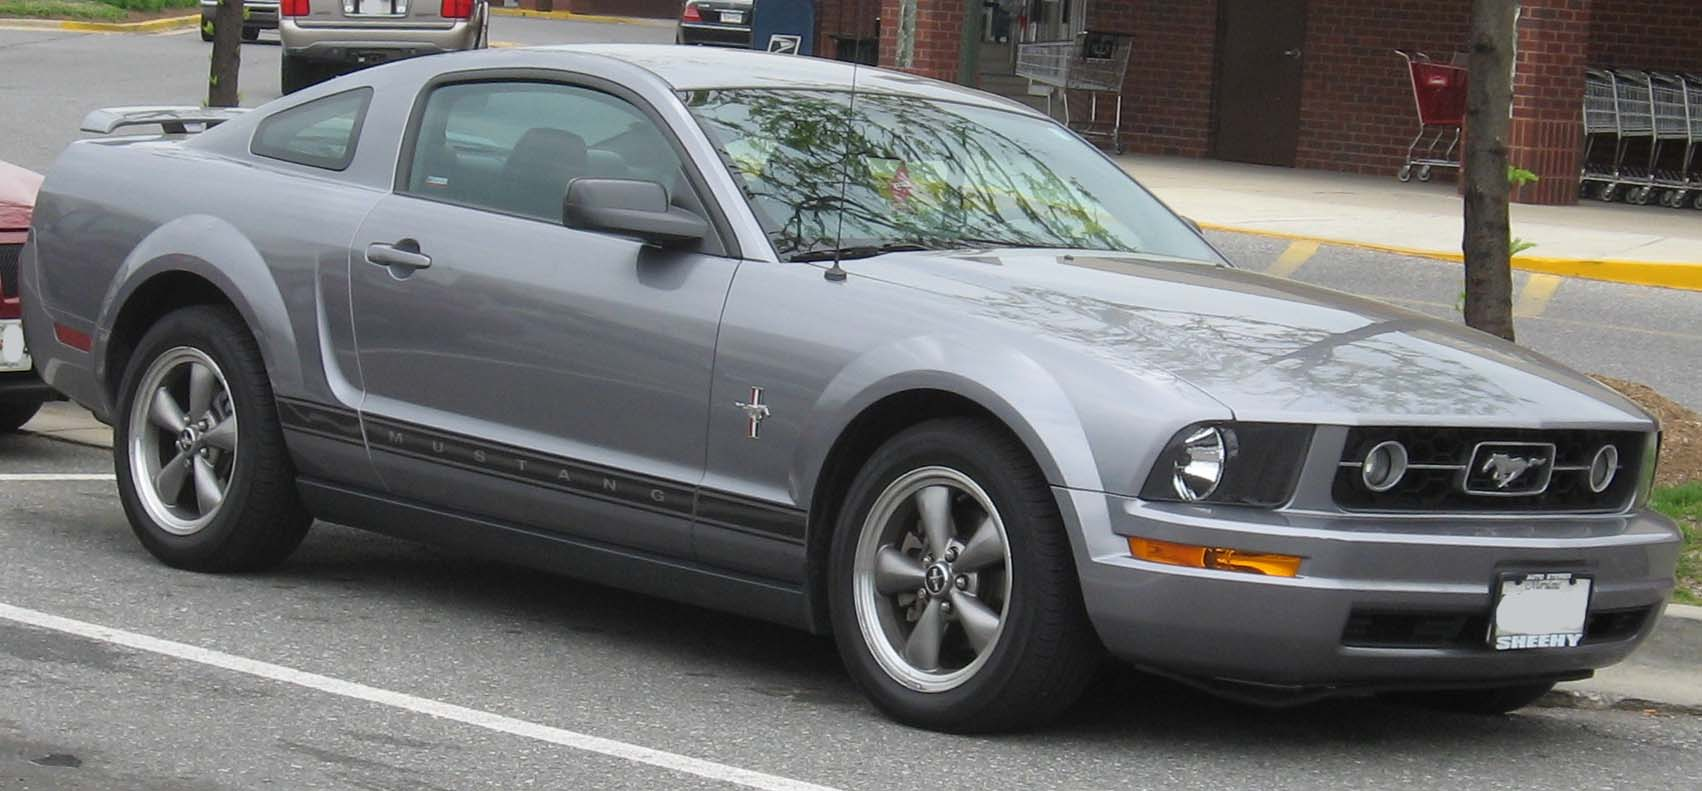 File06 07 ford mustang pony jpg